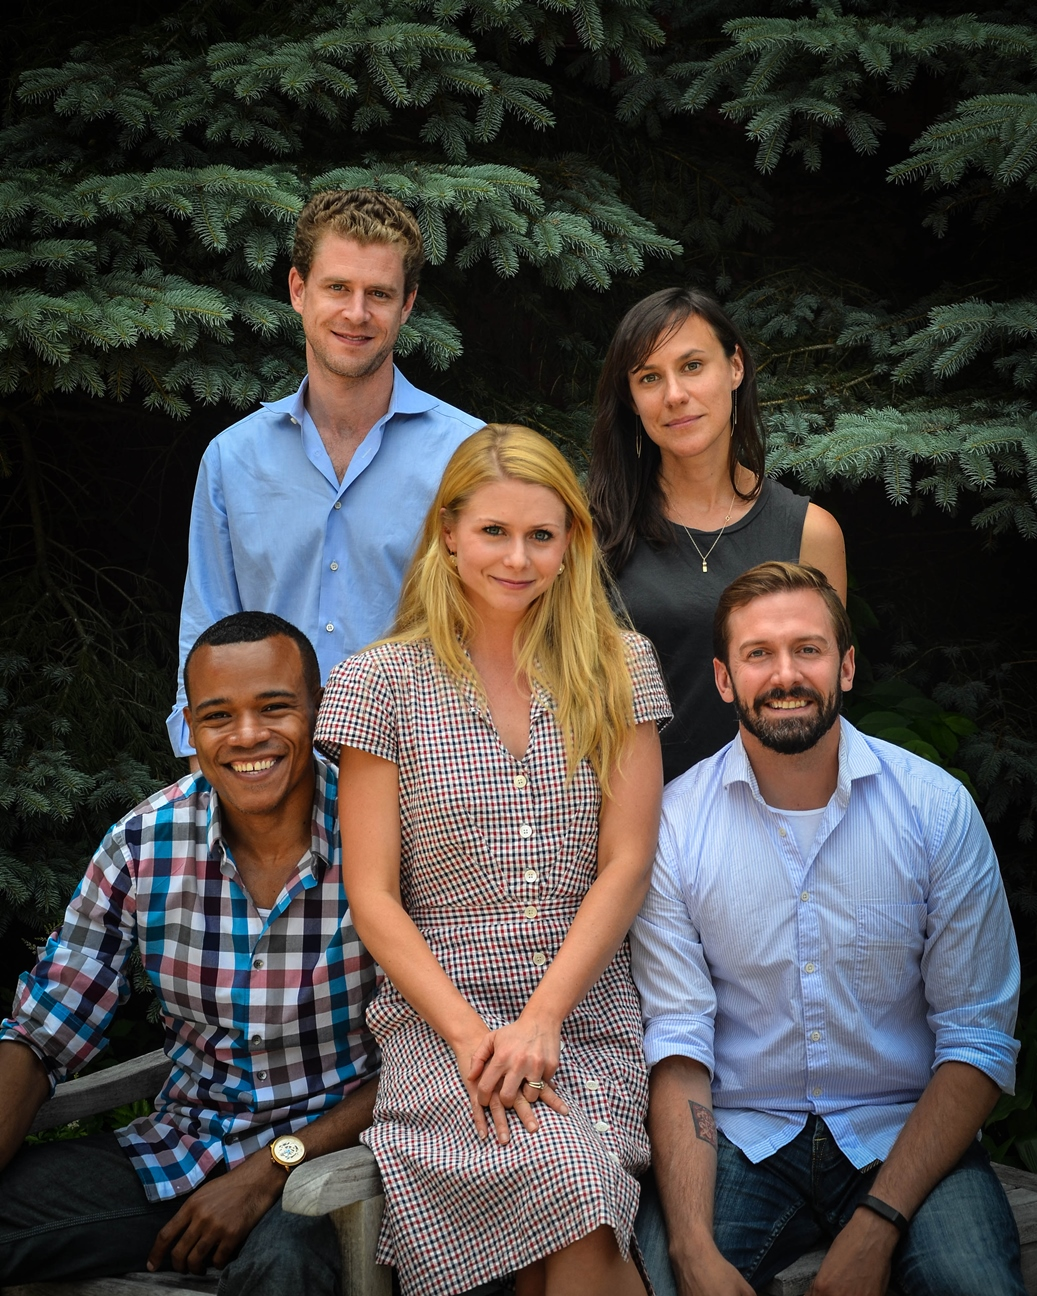 """The cast of Westport Country Playhouse's """"Nora."""" From left, seated, LeRoy McClain, Liv Rooth as Nora, Shawn Fagan; standing, Lucas Hall, Stephanie Janssen."""